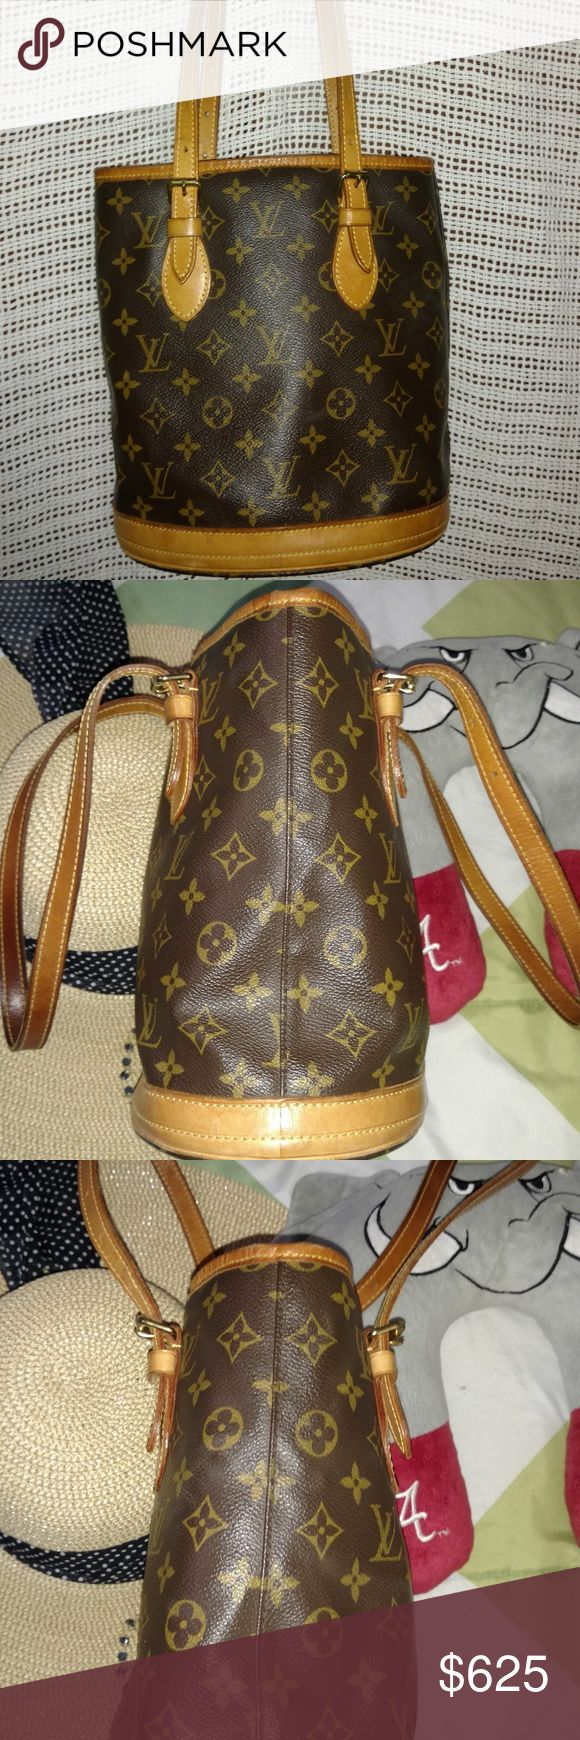 "Louis Vuitton Petit Bucket EUC Date Code SD0012 Louis Vuitton brown and tan monogram coated canvas bucket bag with brass hardware, tan vachetta leather trim, dual flat shoulder straps, beige coated canvas lining, dual pockets at interior walls; one zip closure and open top. Date Code: SD0012 Length 9"" Width 6"" Height 10"" Drop 8.5"" (adjustable)  Some small discoloration on trim and straps. Good previously used condition consistent with use. A few marks of the bottom of the bag nothing bad…"